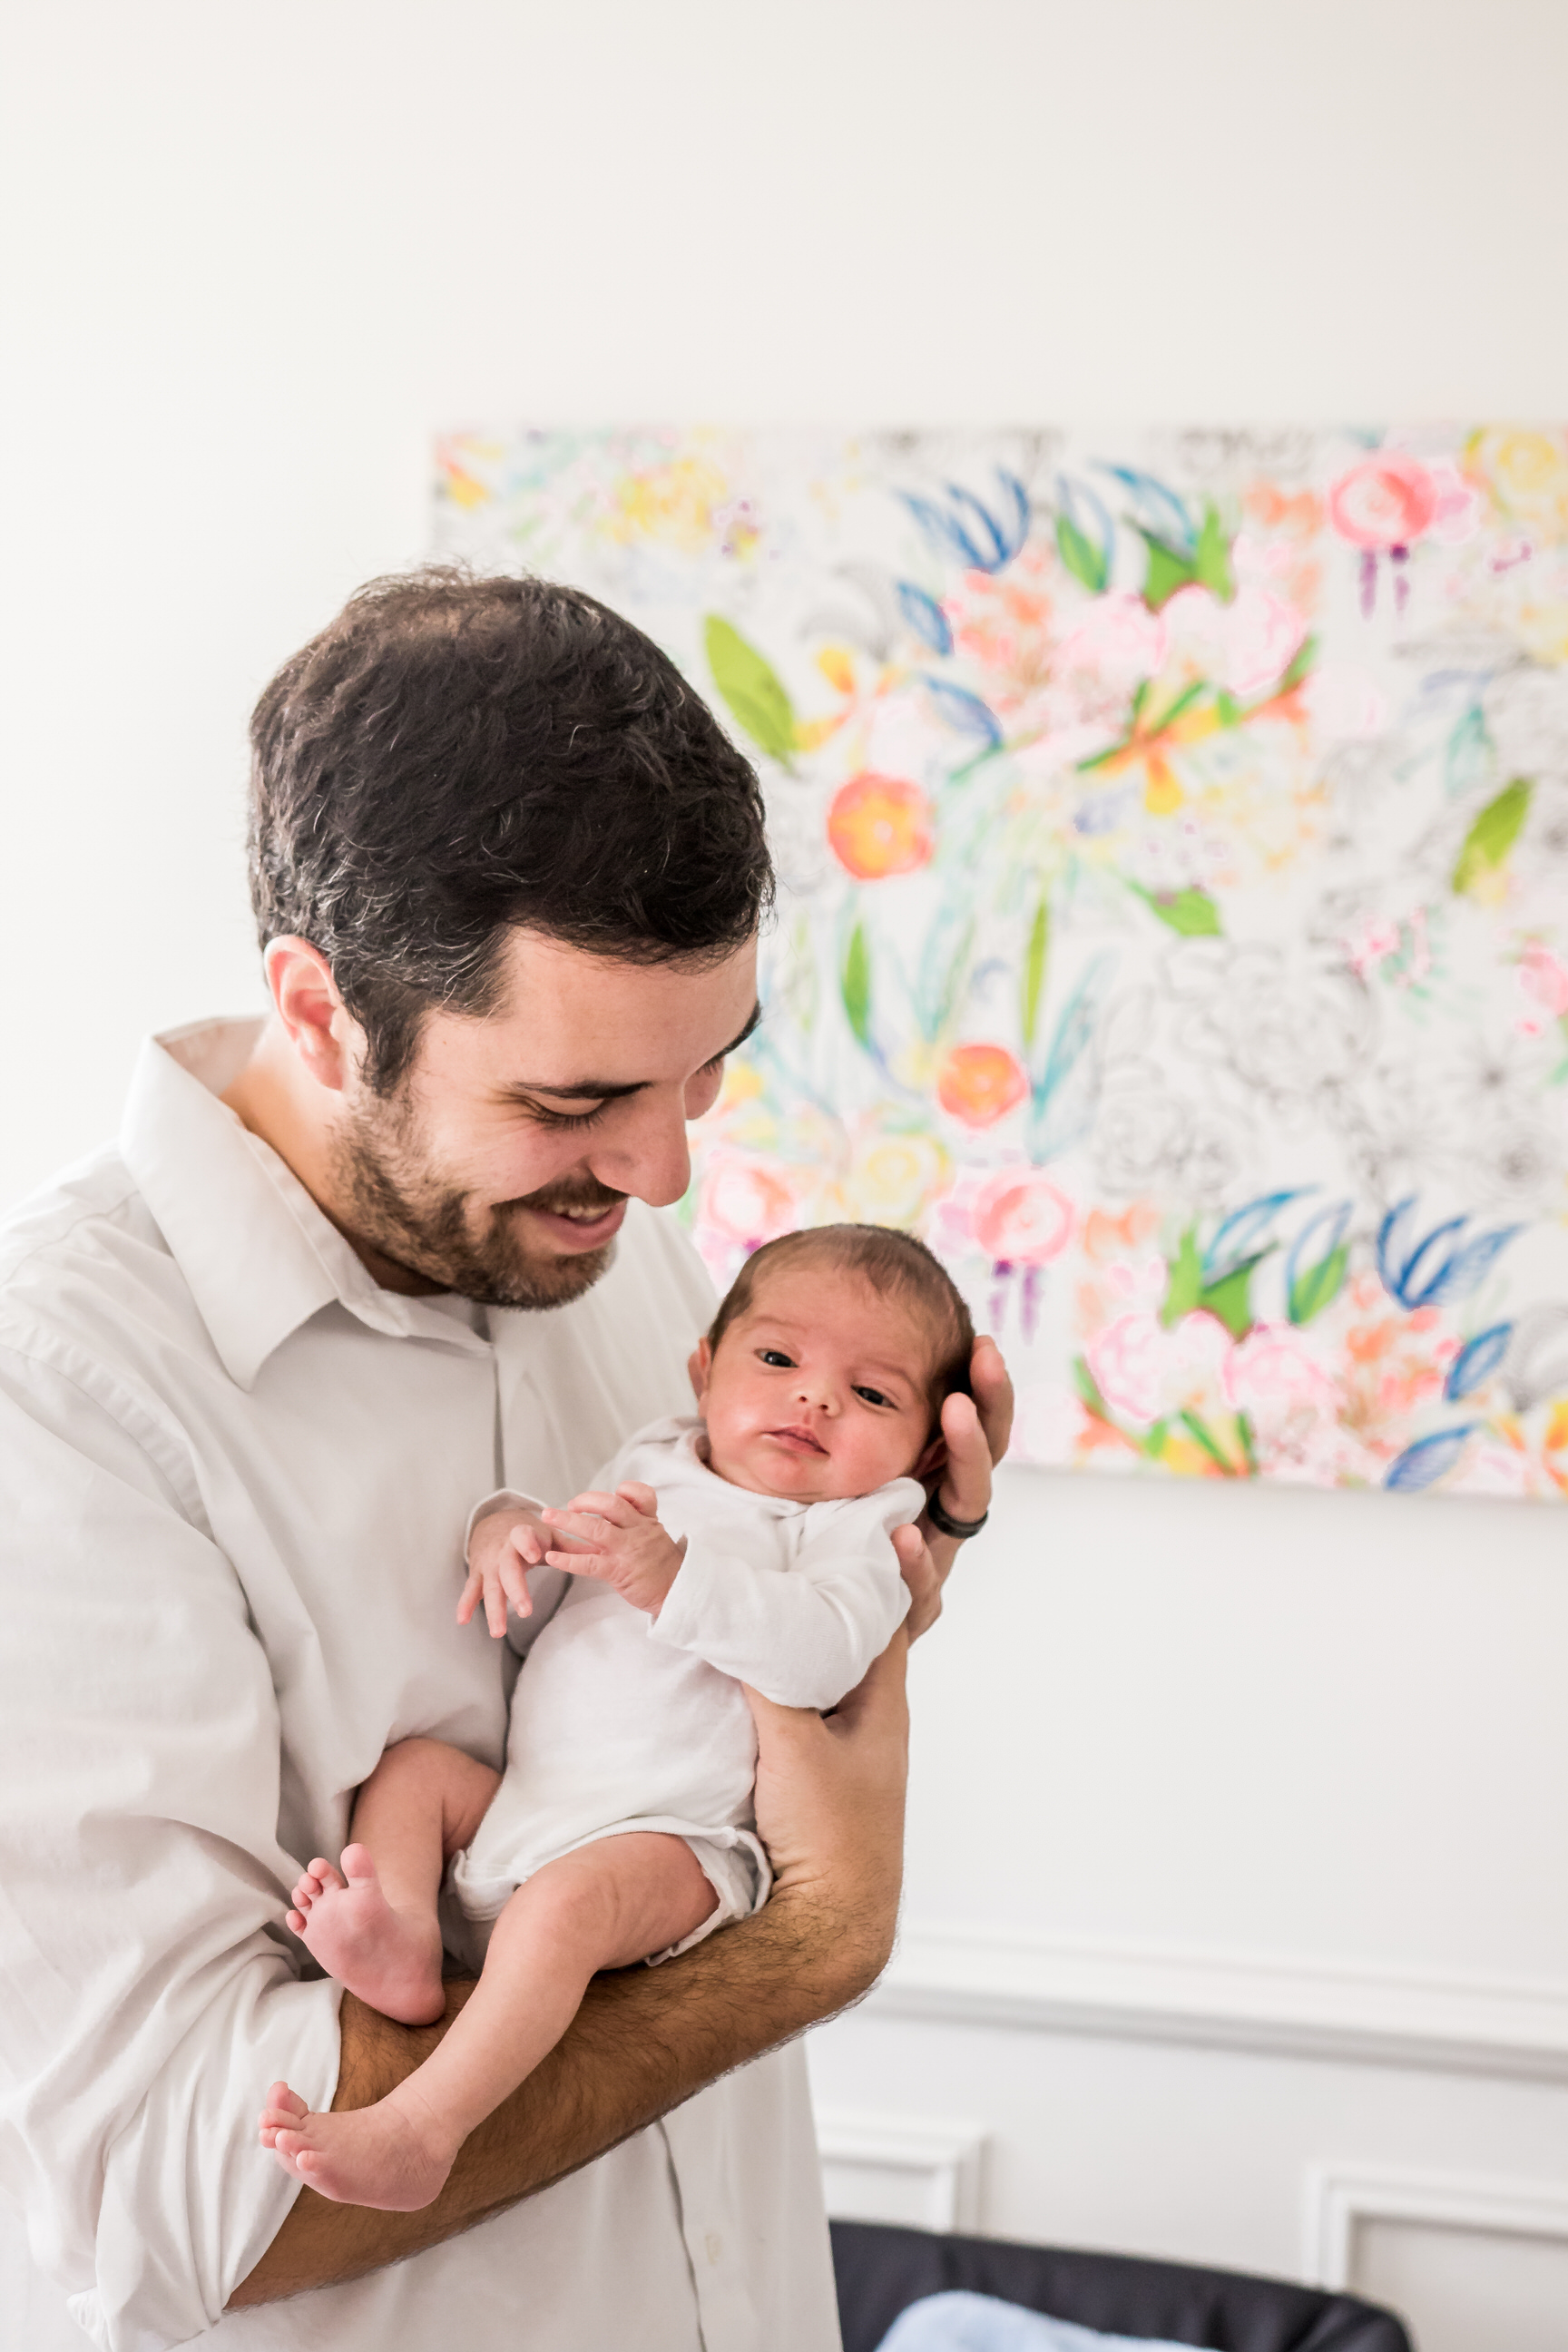 Affordable newborn photography in Fishers, Indiana